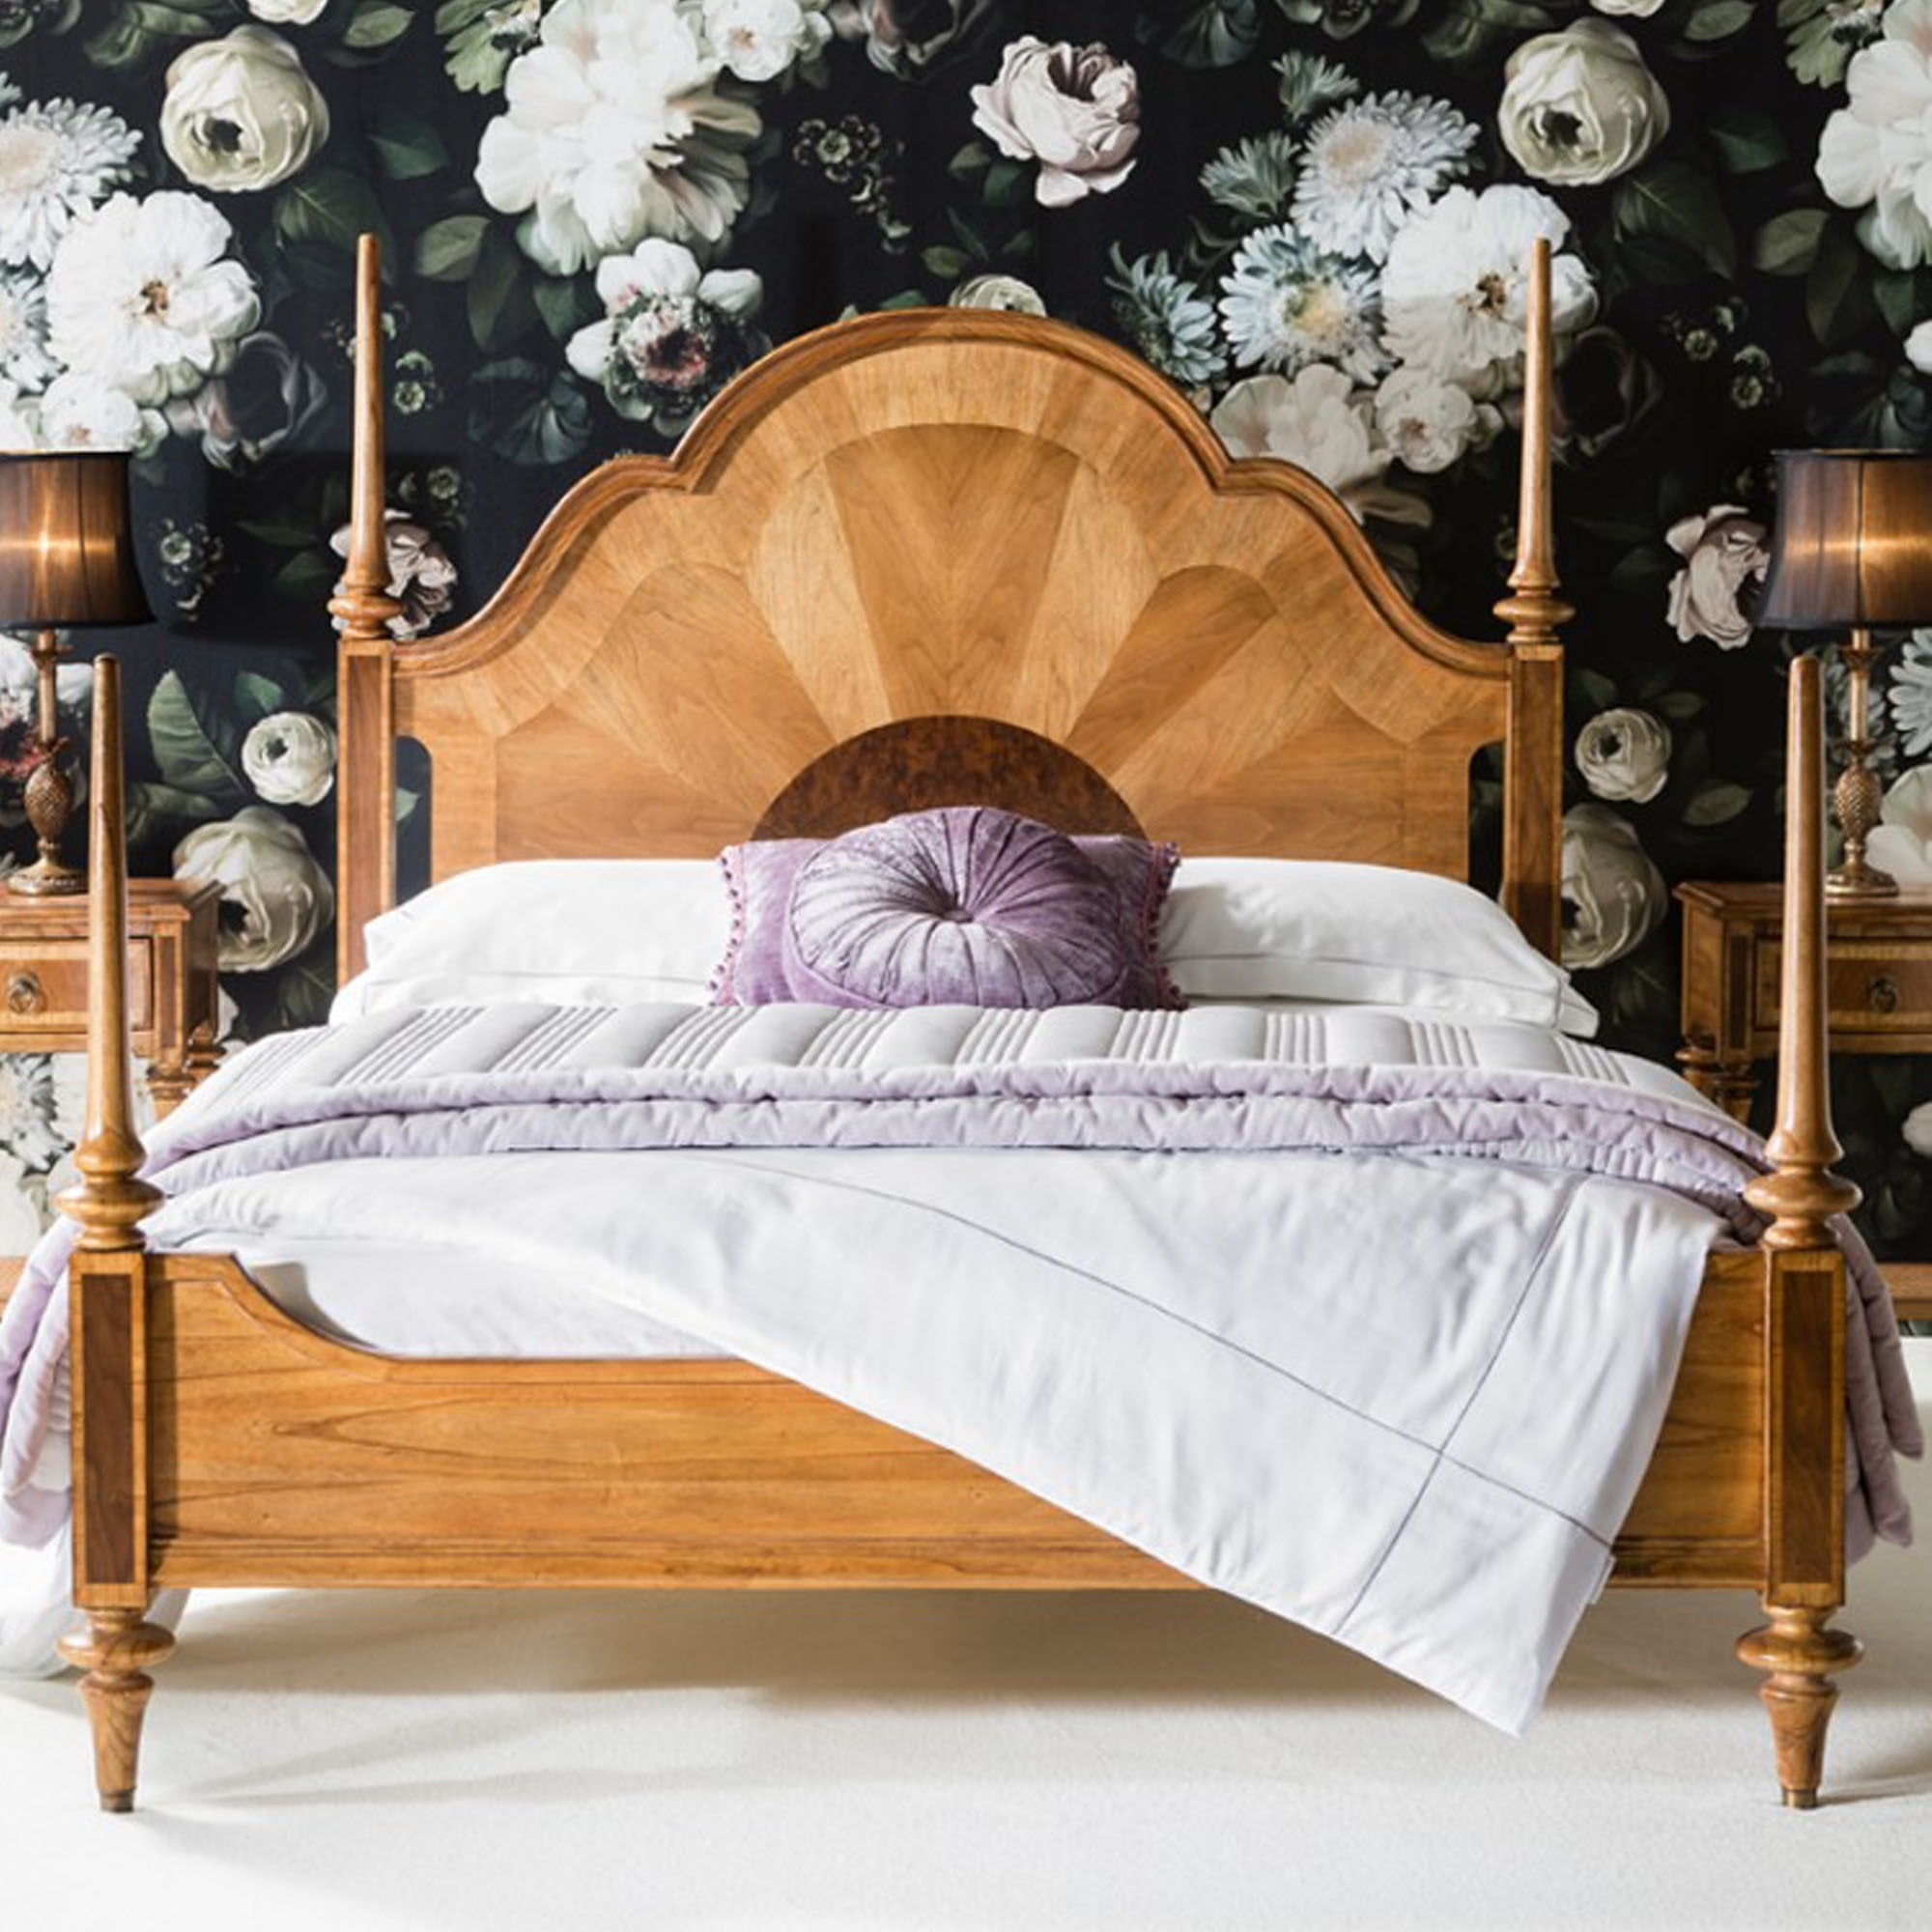 Antique French Style Spire Wooden Bed Beds French Styled Beds